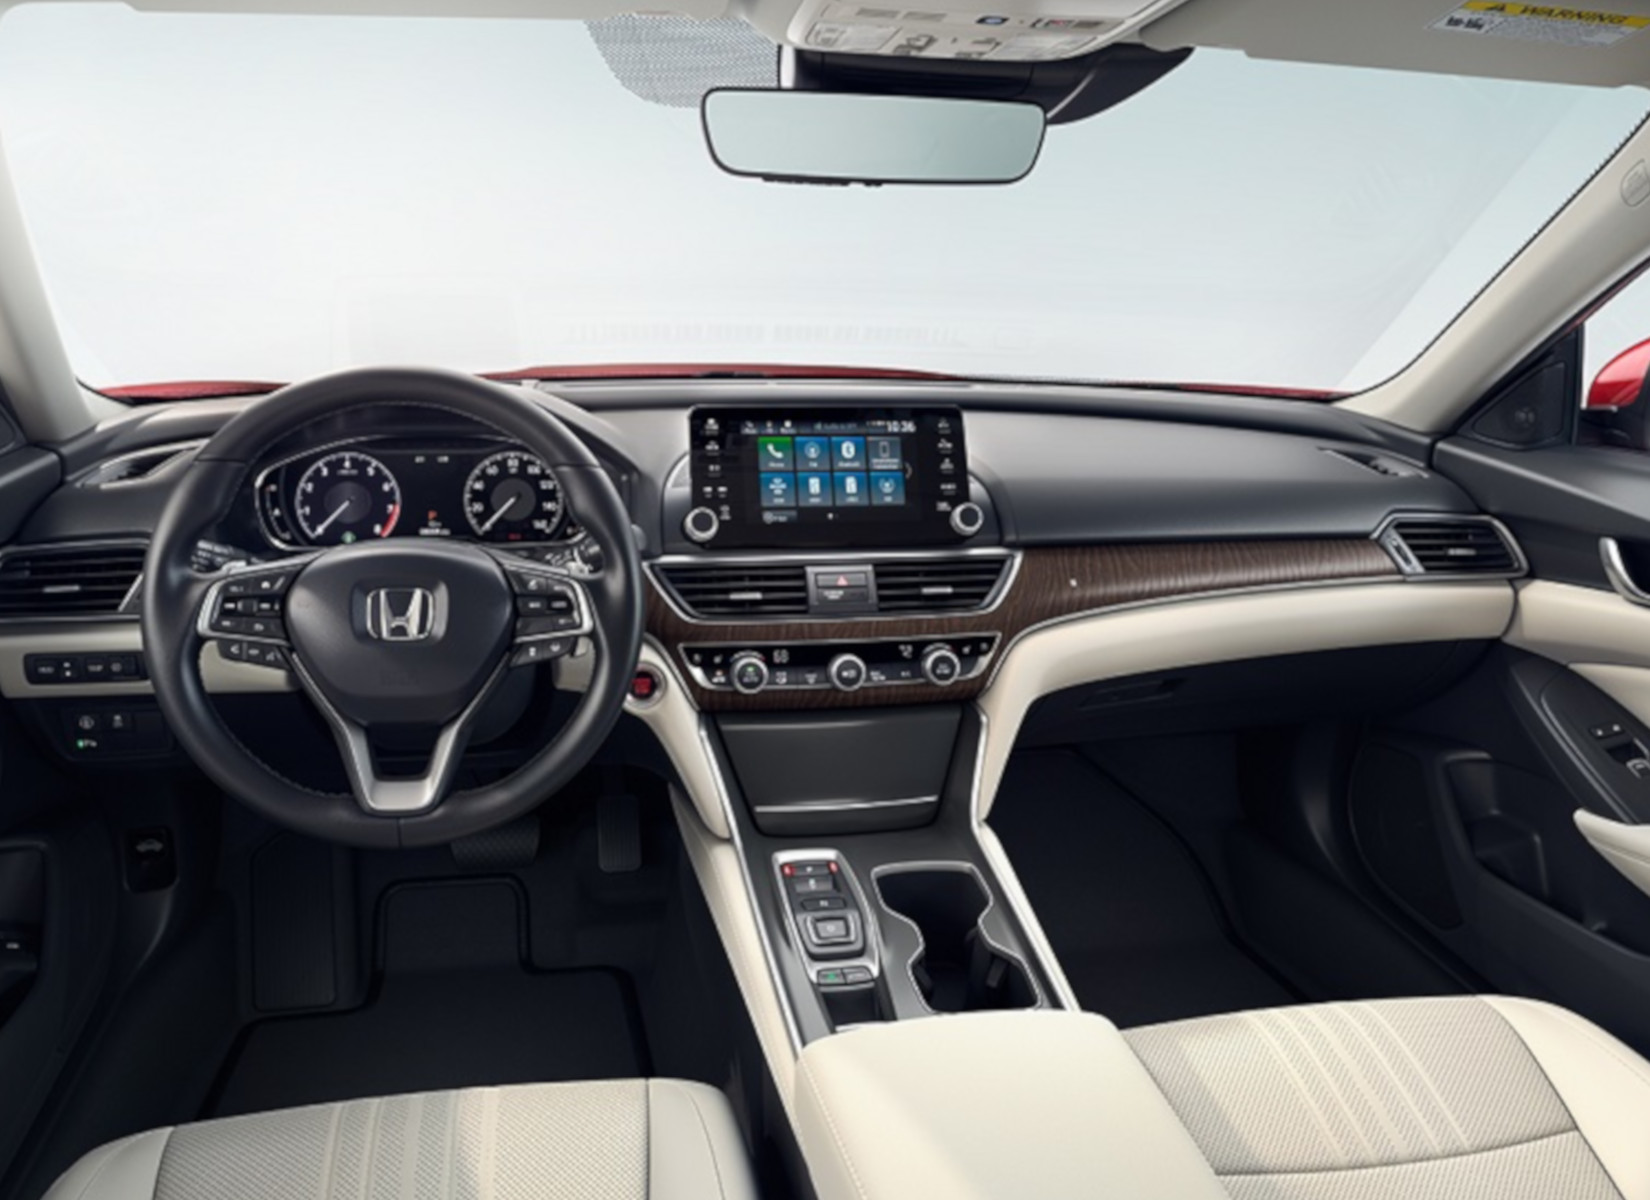 Touchscreen display inside the 2019 Honda Accord